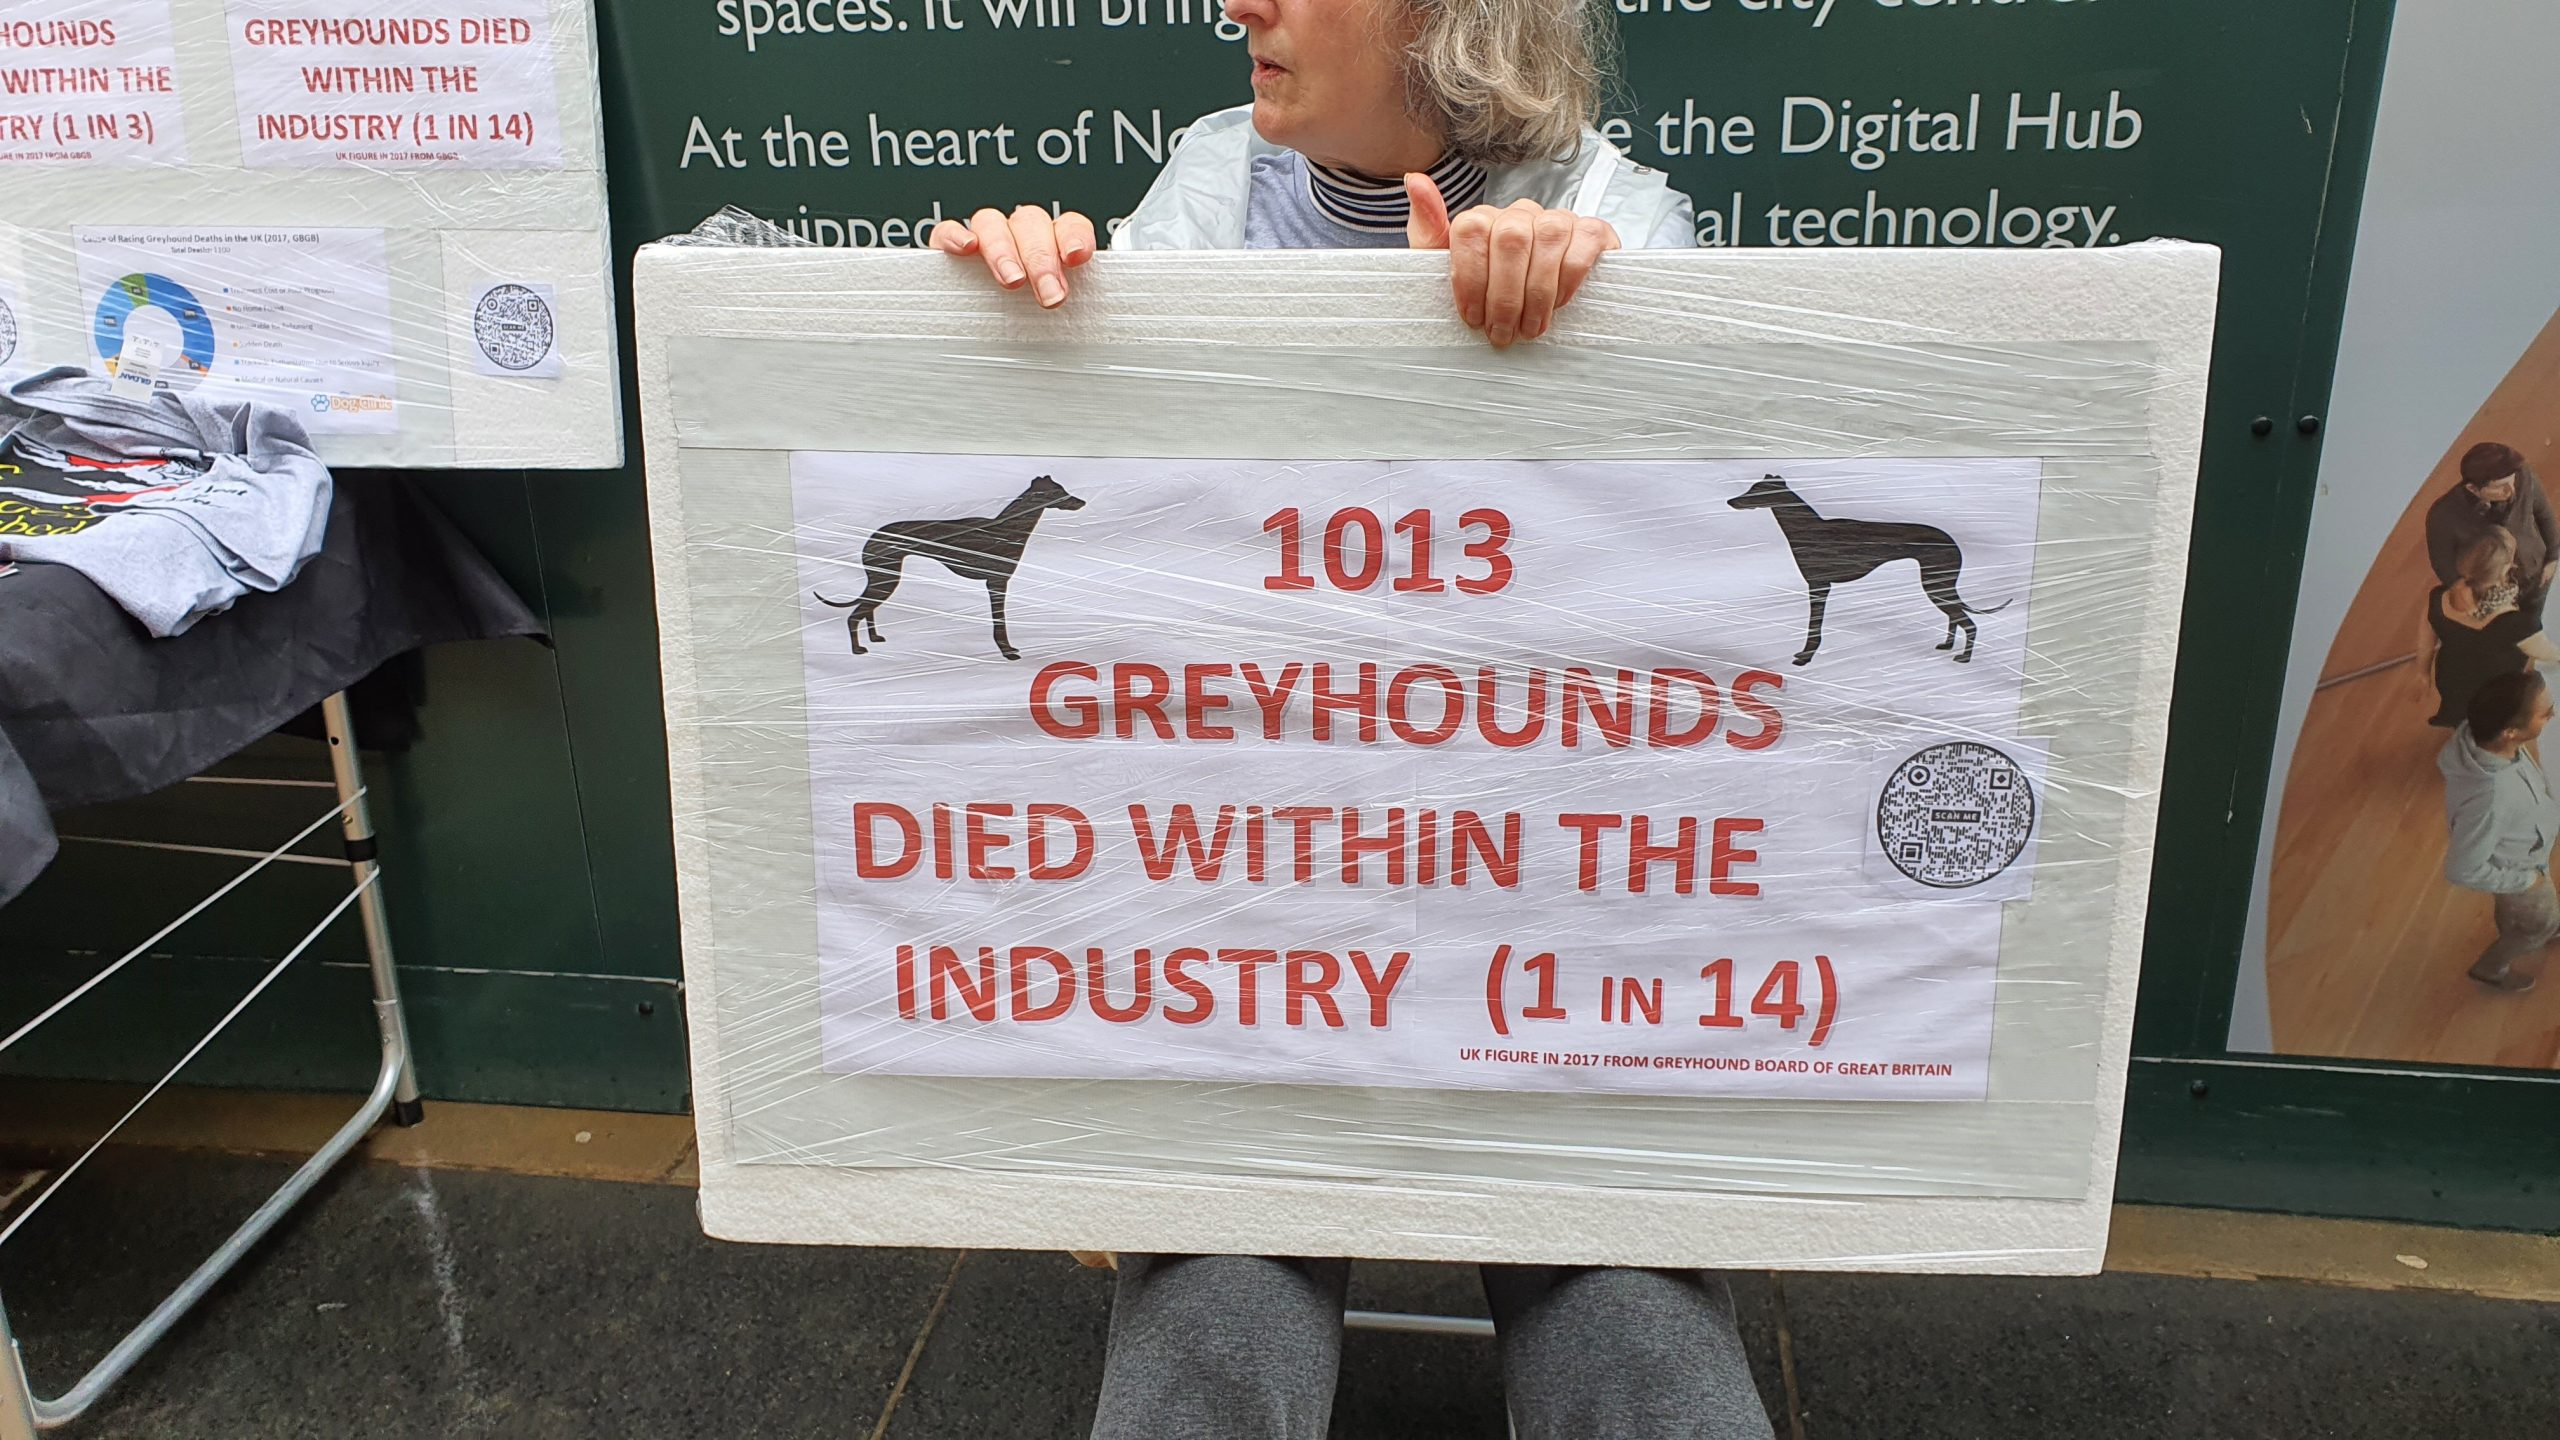 """A women holding a sign saying: """"1013 GREYHOUNDS DIED WITHIN THE INDUSTRY (1 in 14)"""" and in small writing at the bottom """"UK FIGURE IN 2017 FROM GREYHOUND BOARD OF GREAT BRITAIN"""""""